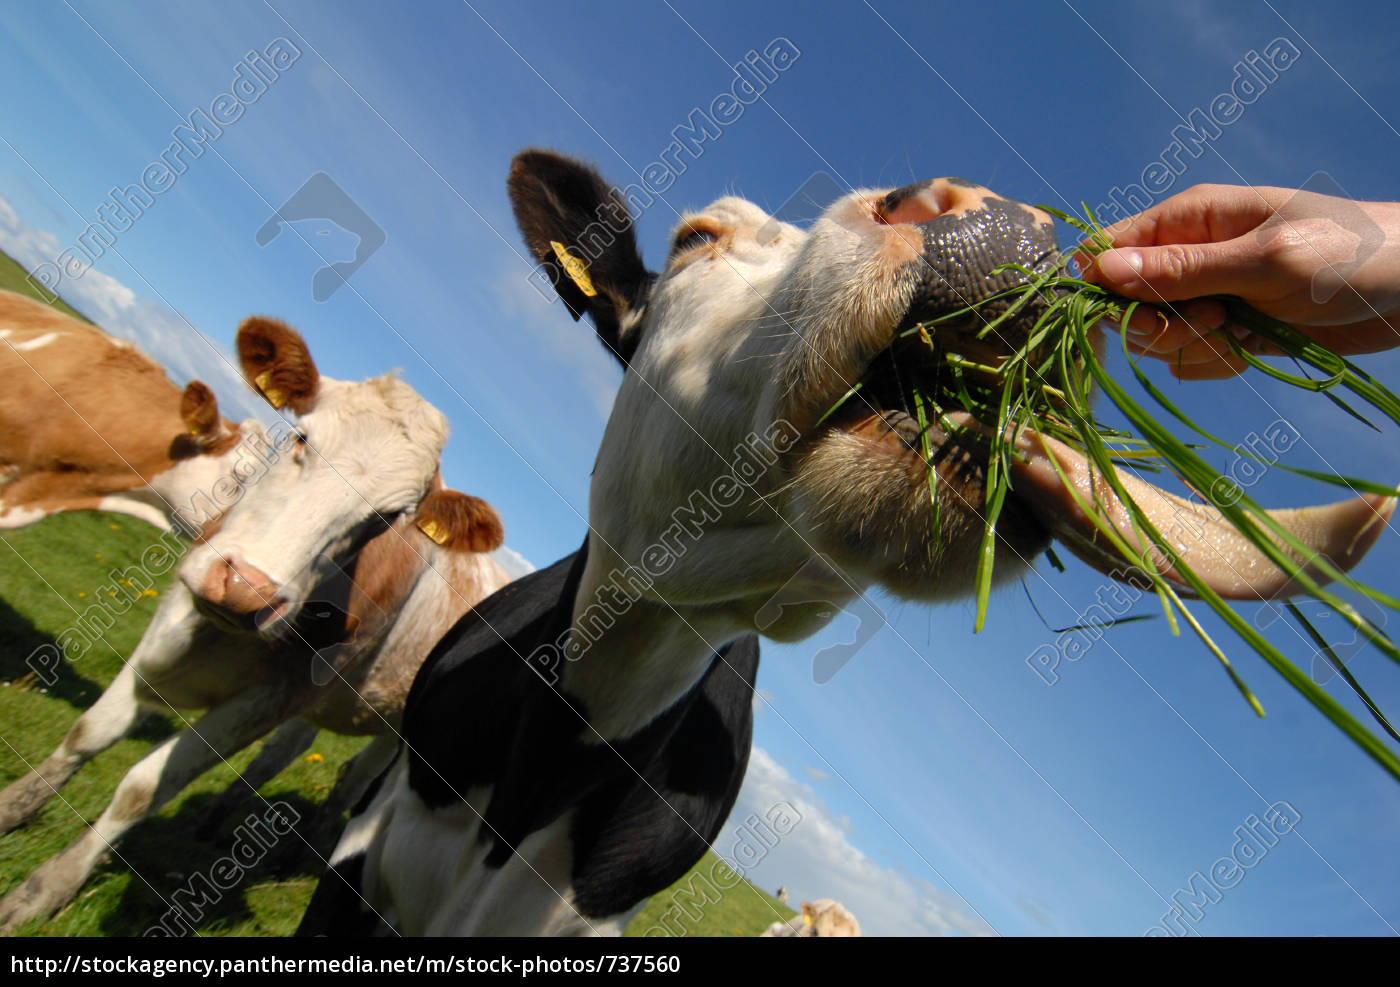 hungry, cows - 737560